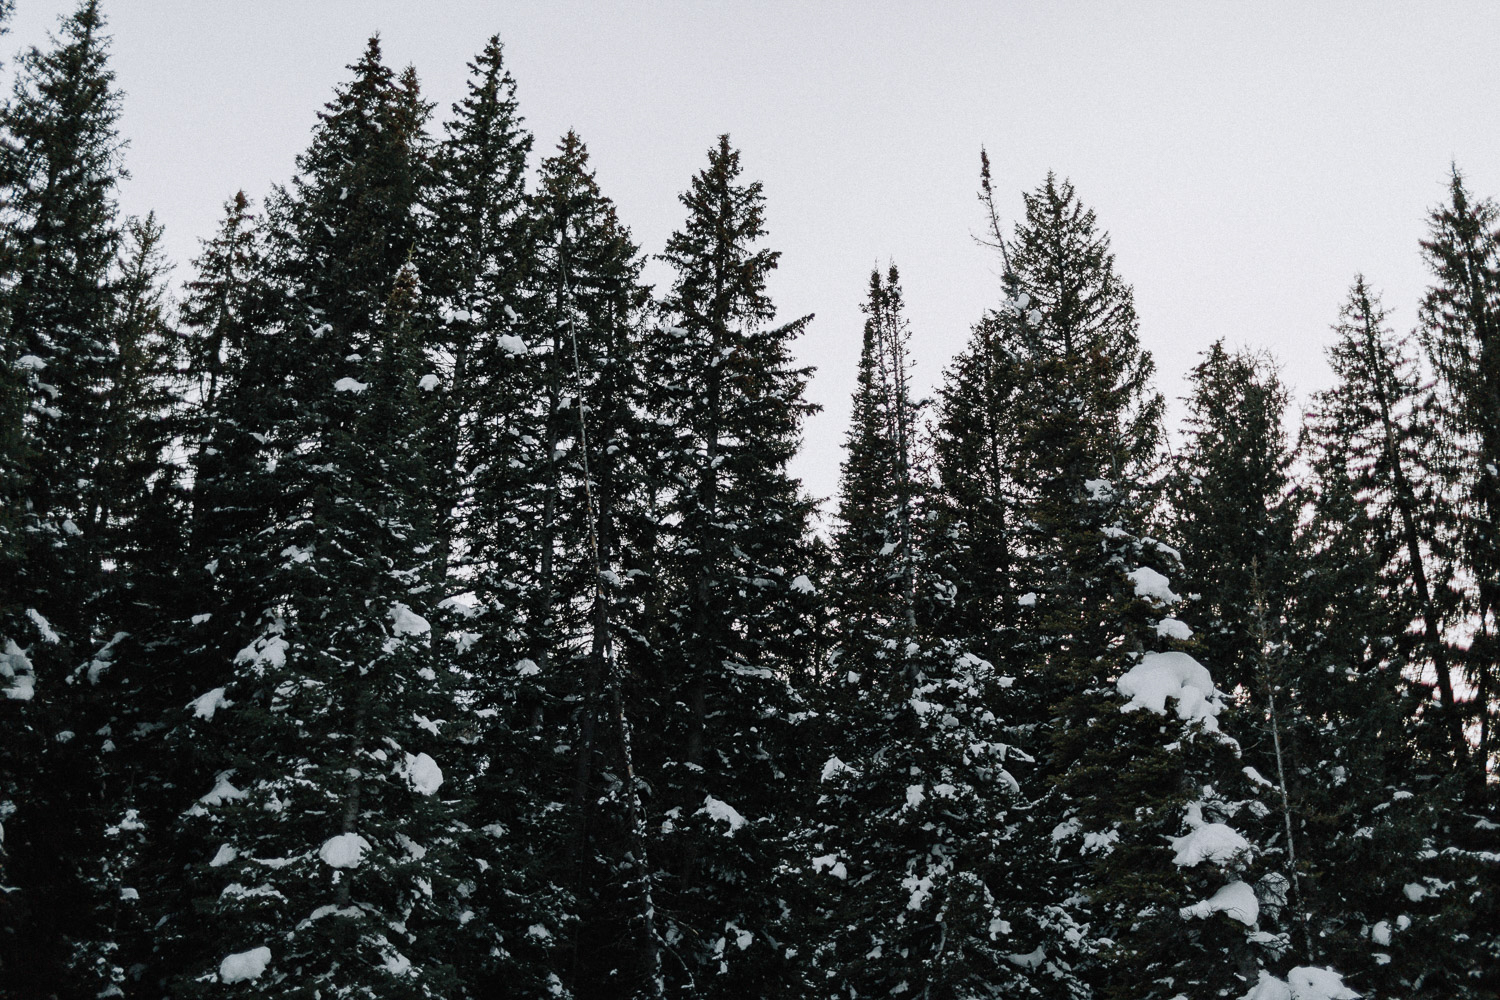 Image of pine trees with snow in winter